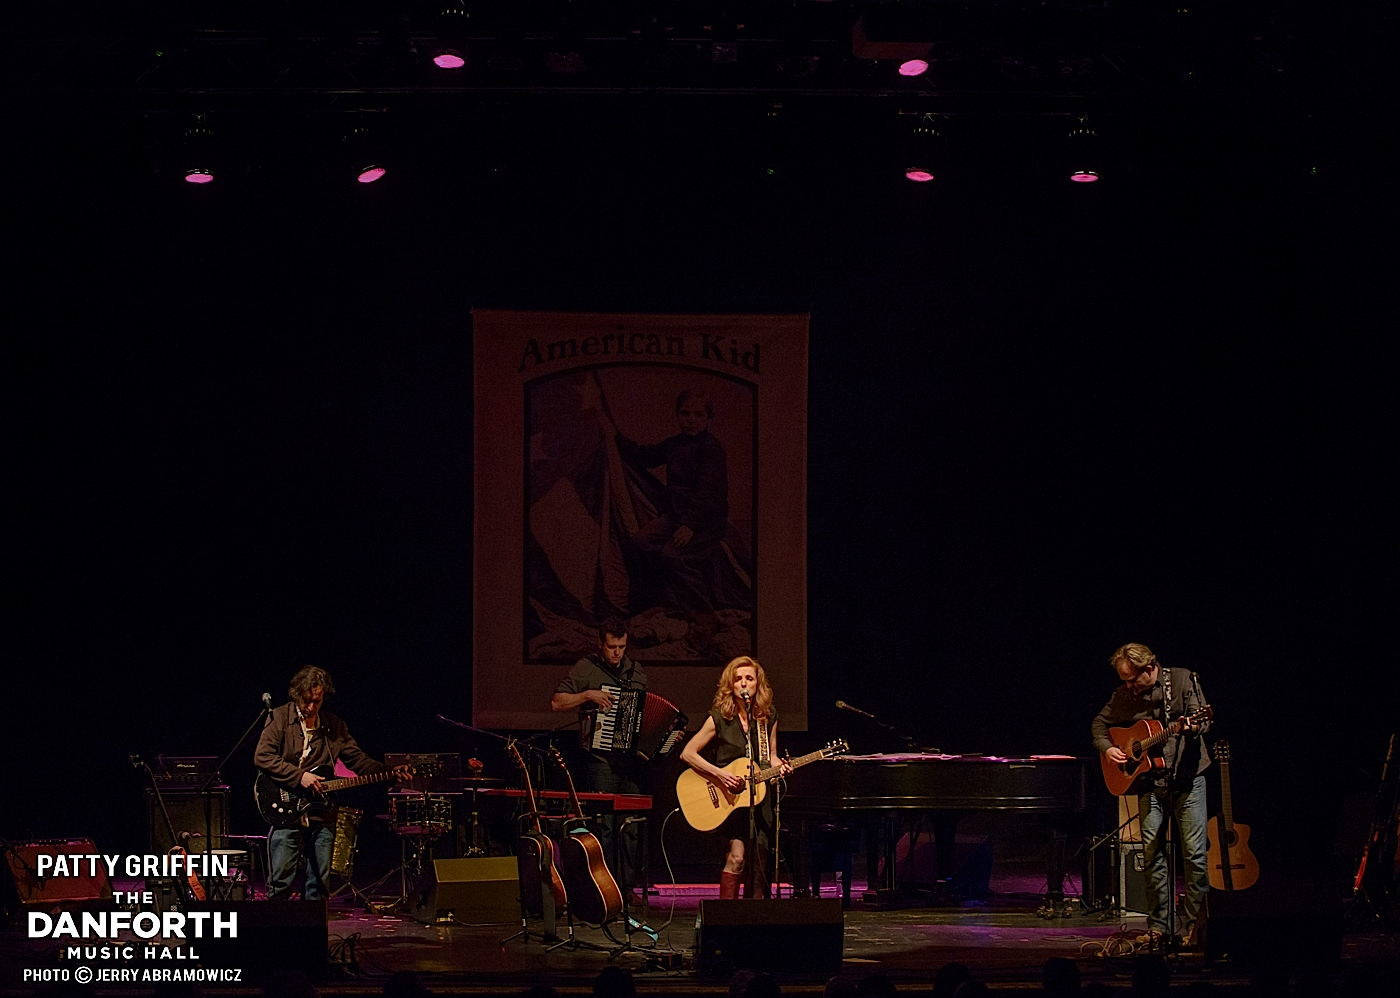 20130611 Patty Griffin performs at The Danforth Music Hall Toronto 0238